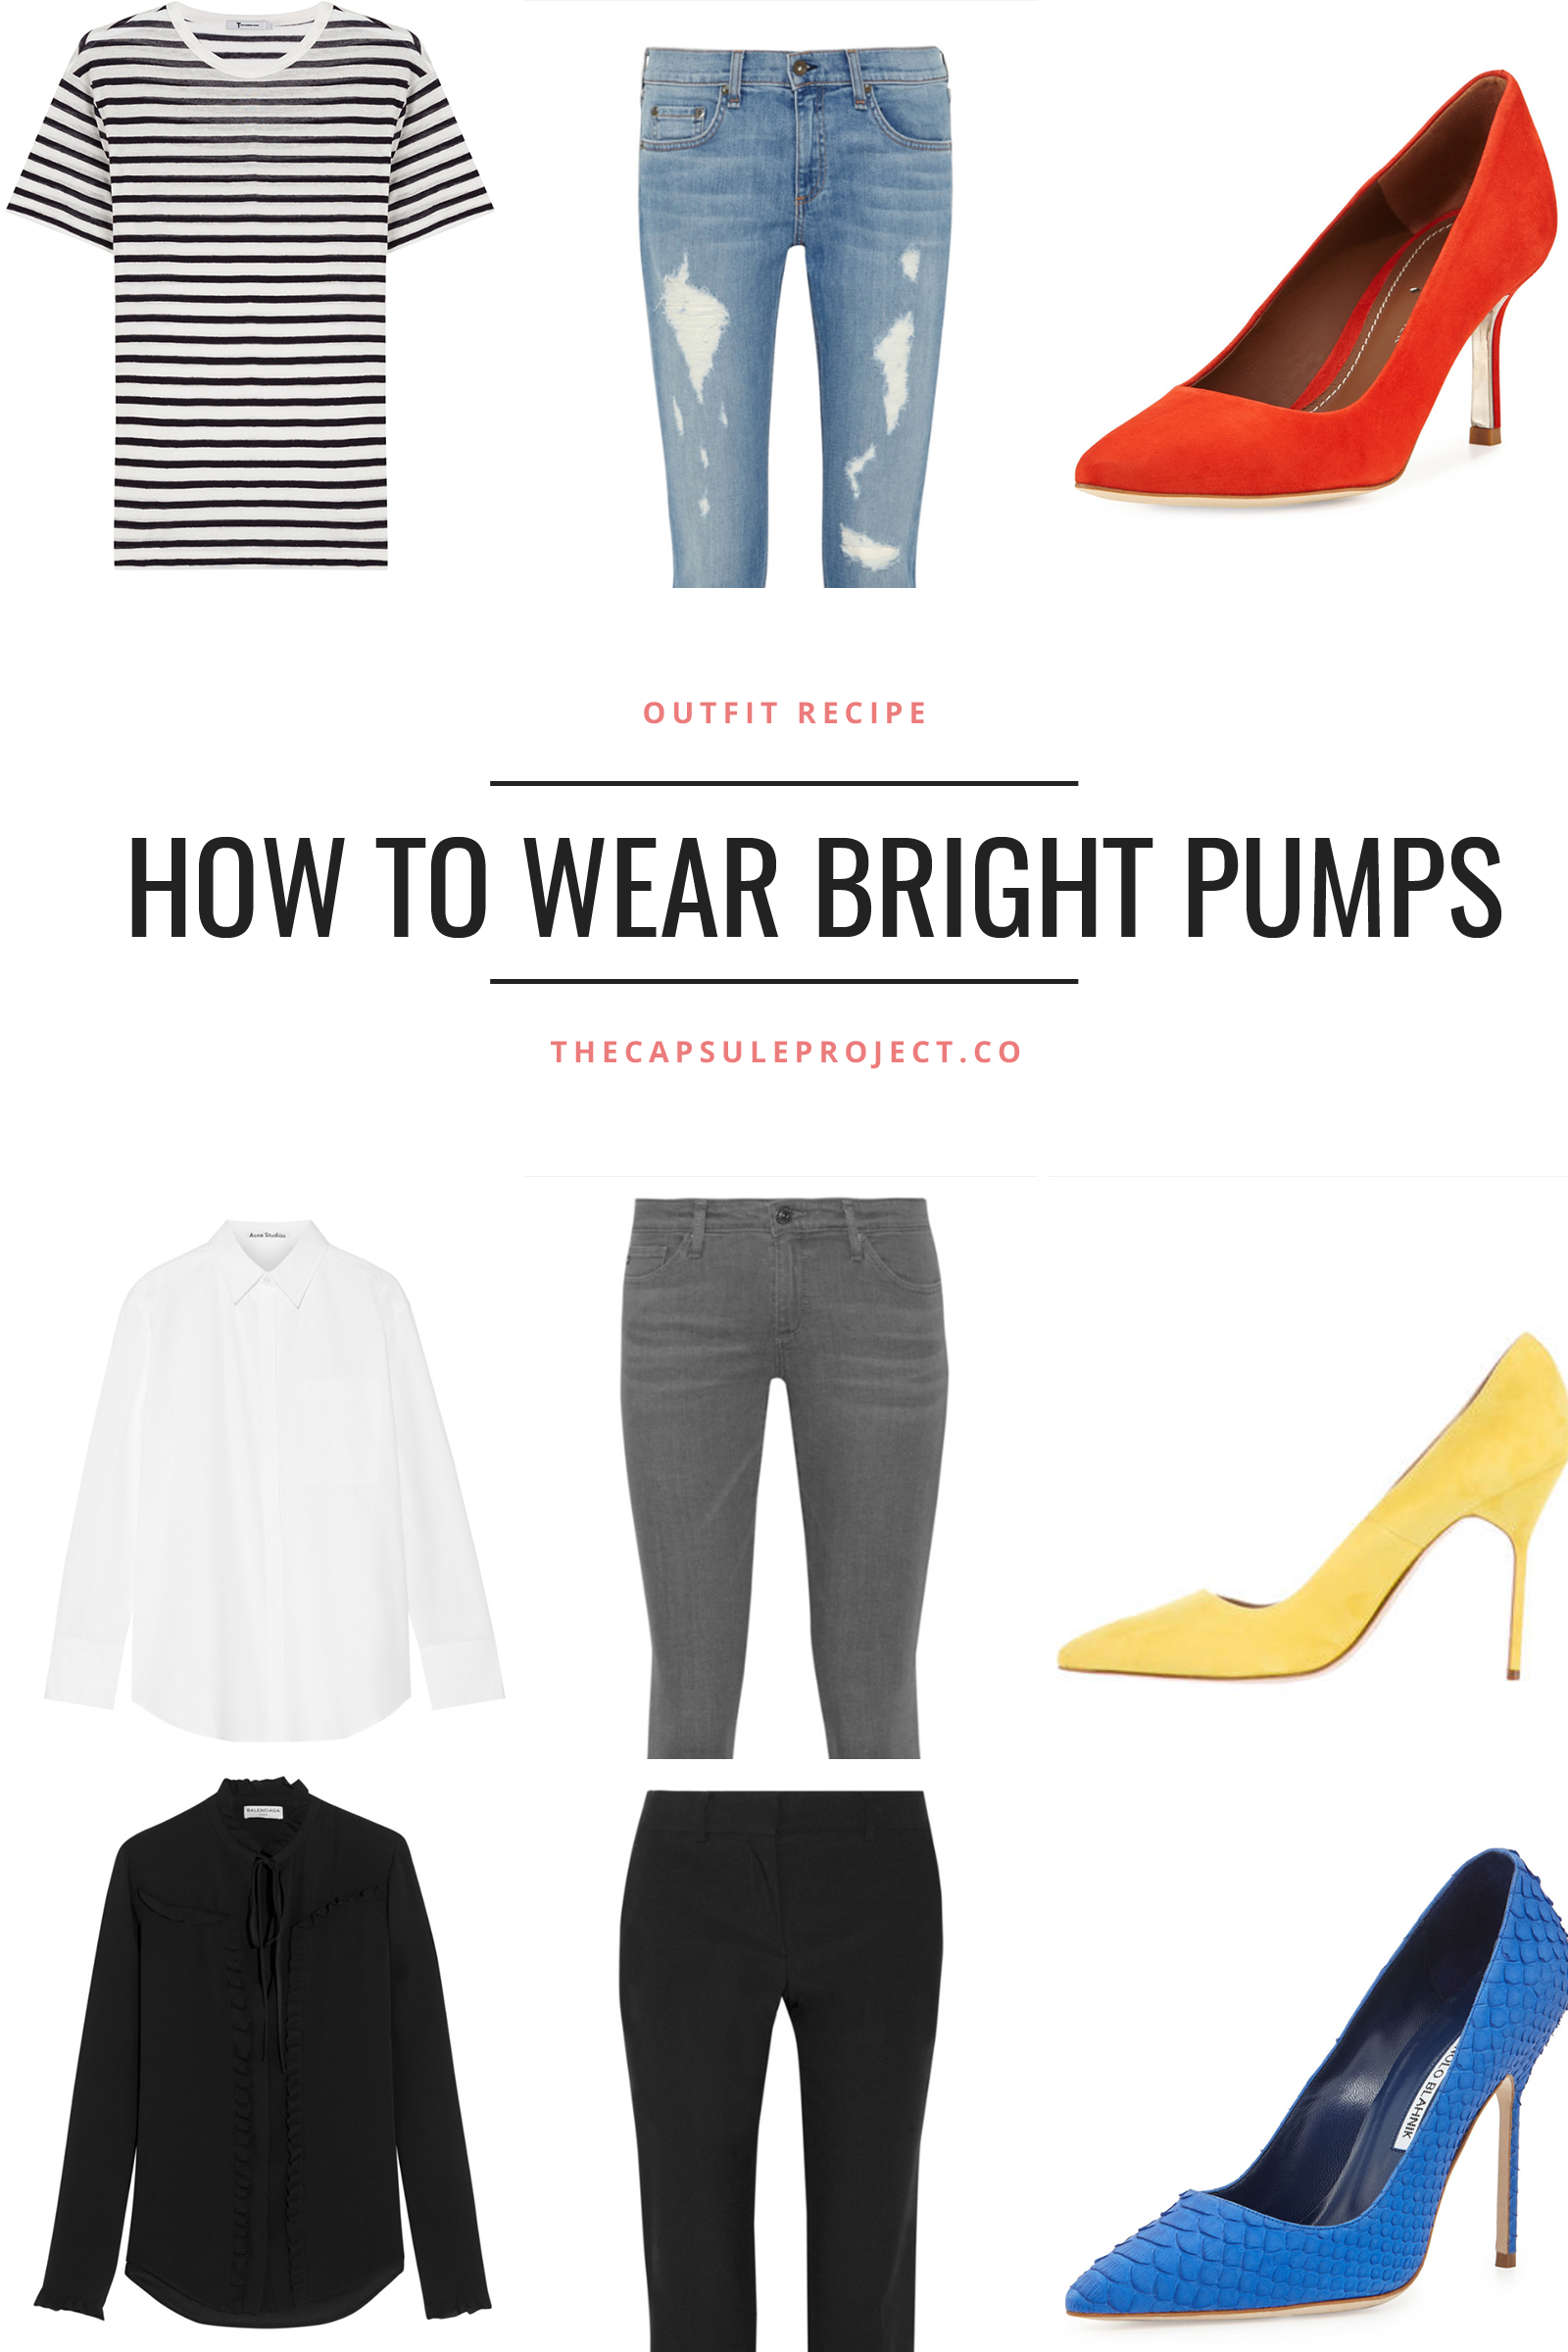 How to wear bright pumps